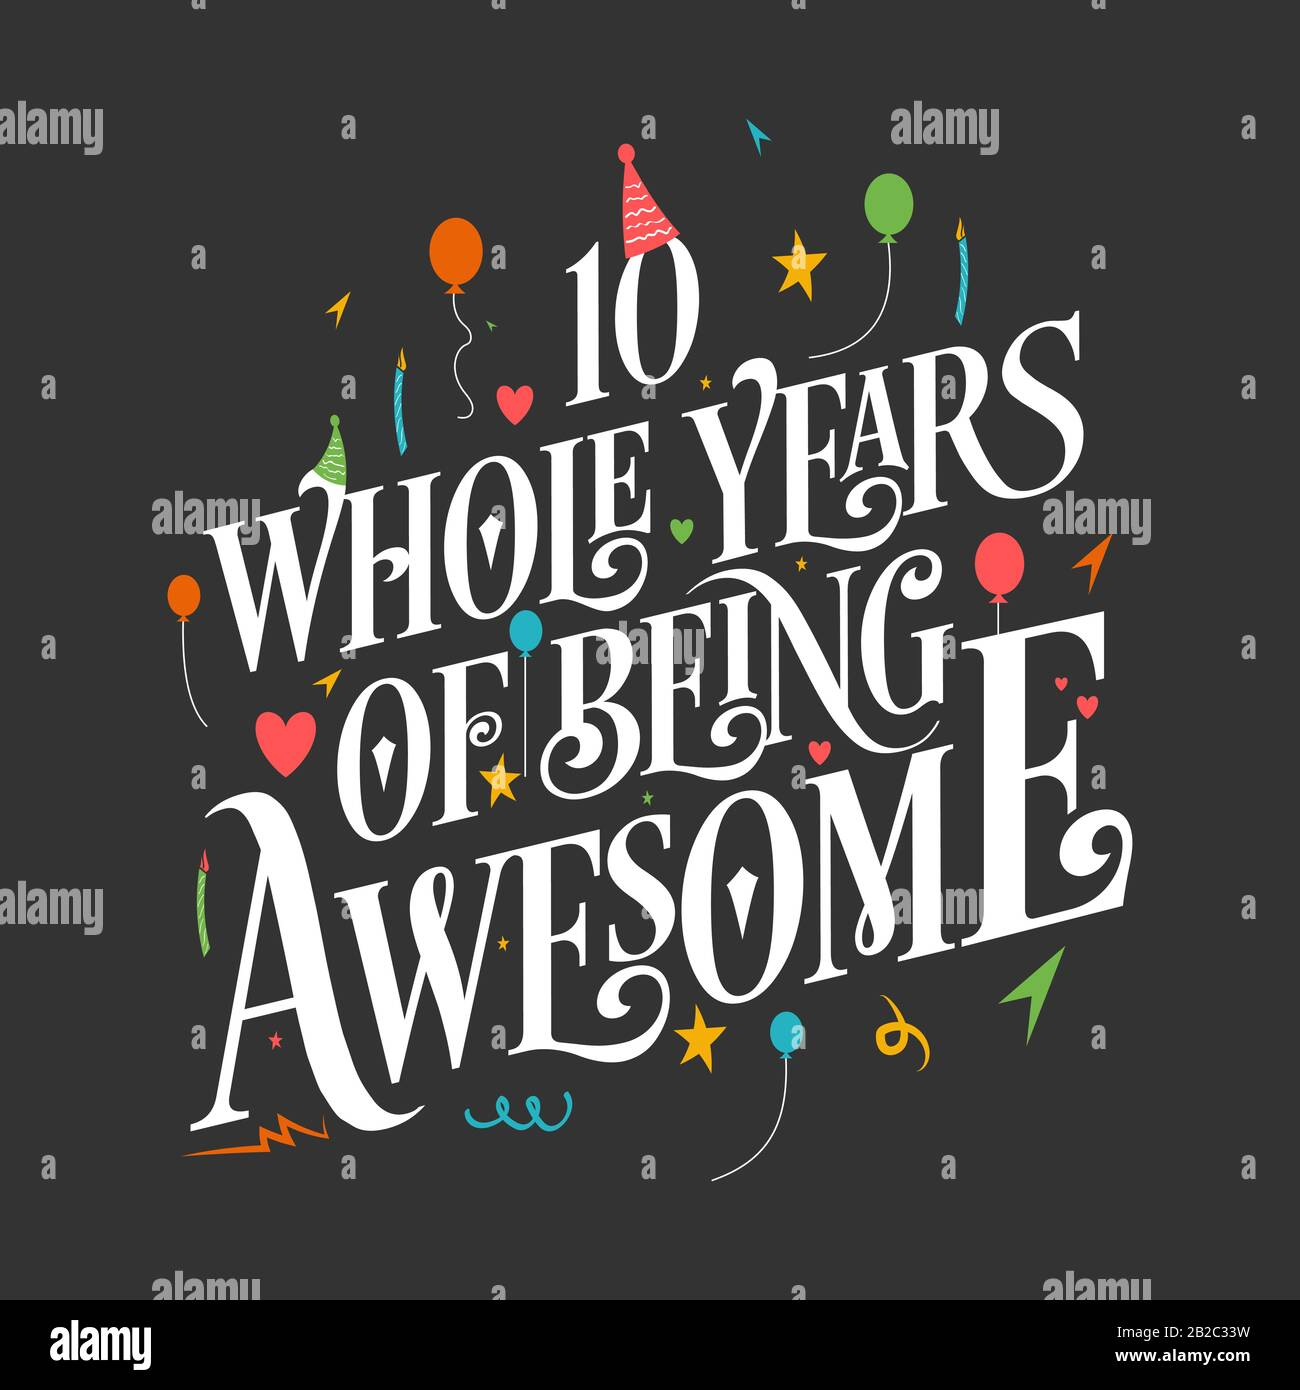 10 Years Birthday And 10 Years Wedding Anniversary Typography Design 10 Whole Years Of Being Awesome Stock Vector Image Art Alamy